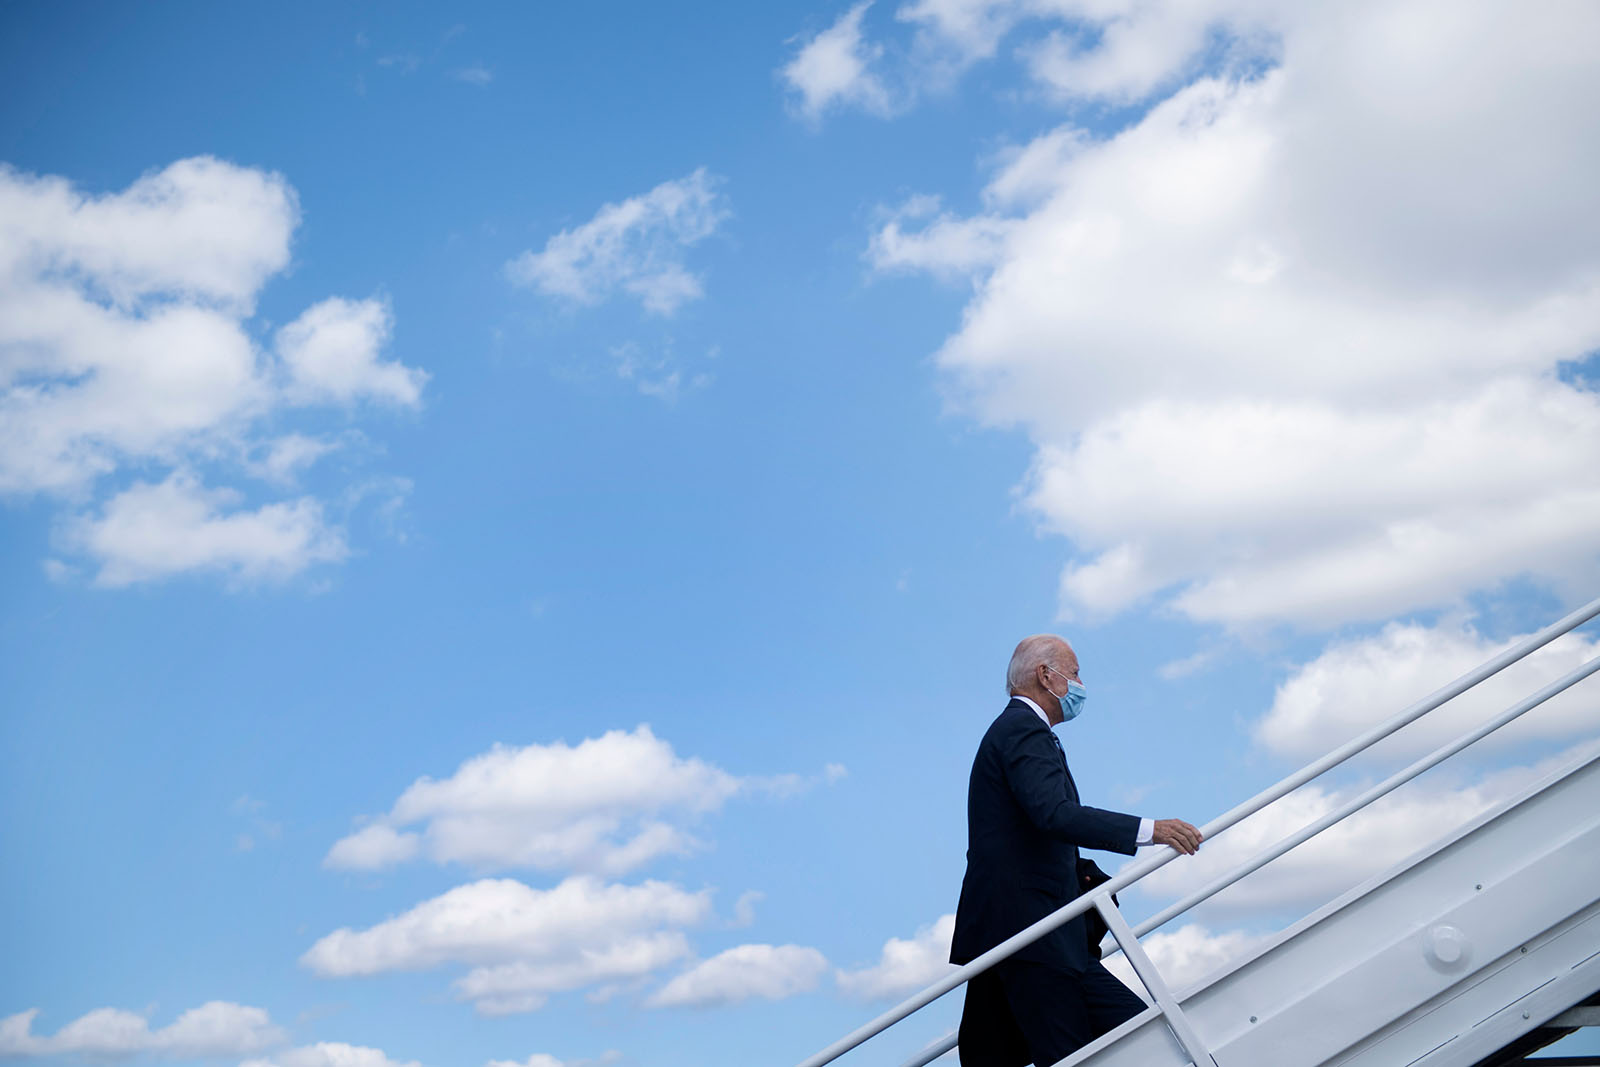 Democratic presidential candidate Joe Biden boards his campaign plane at Wilmington Airport on October 6, in New Castle, Delaware.